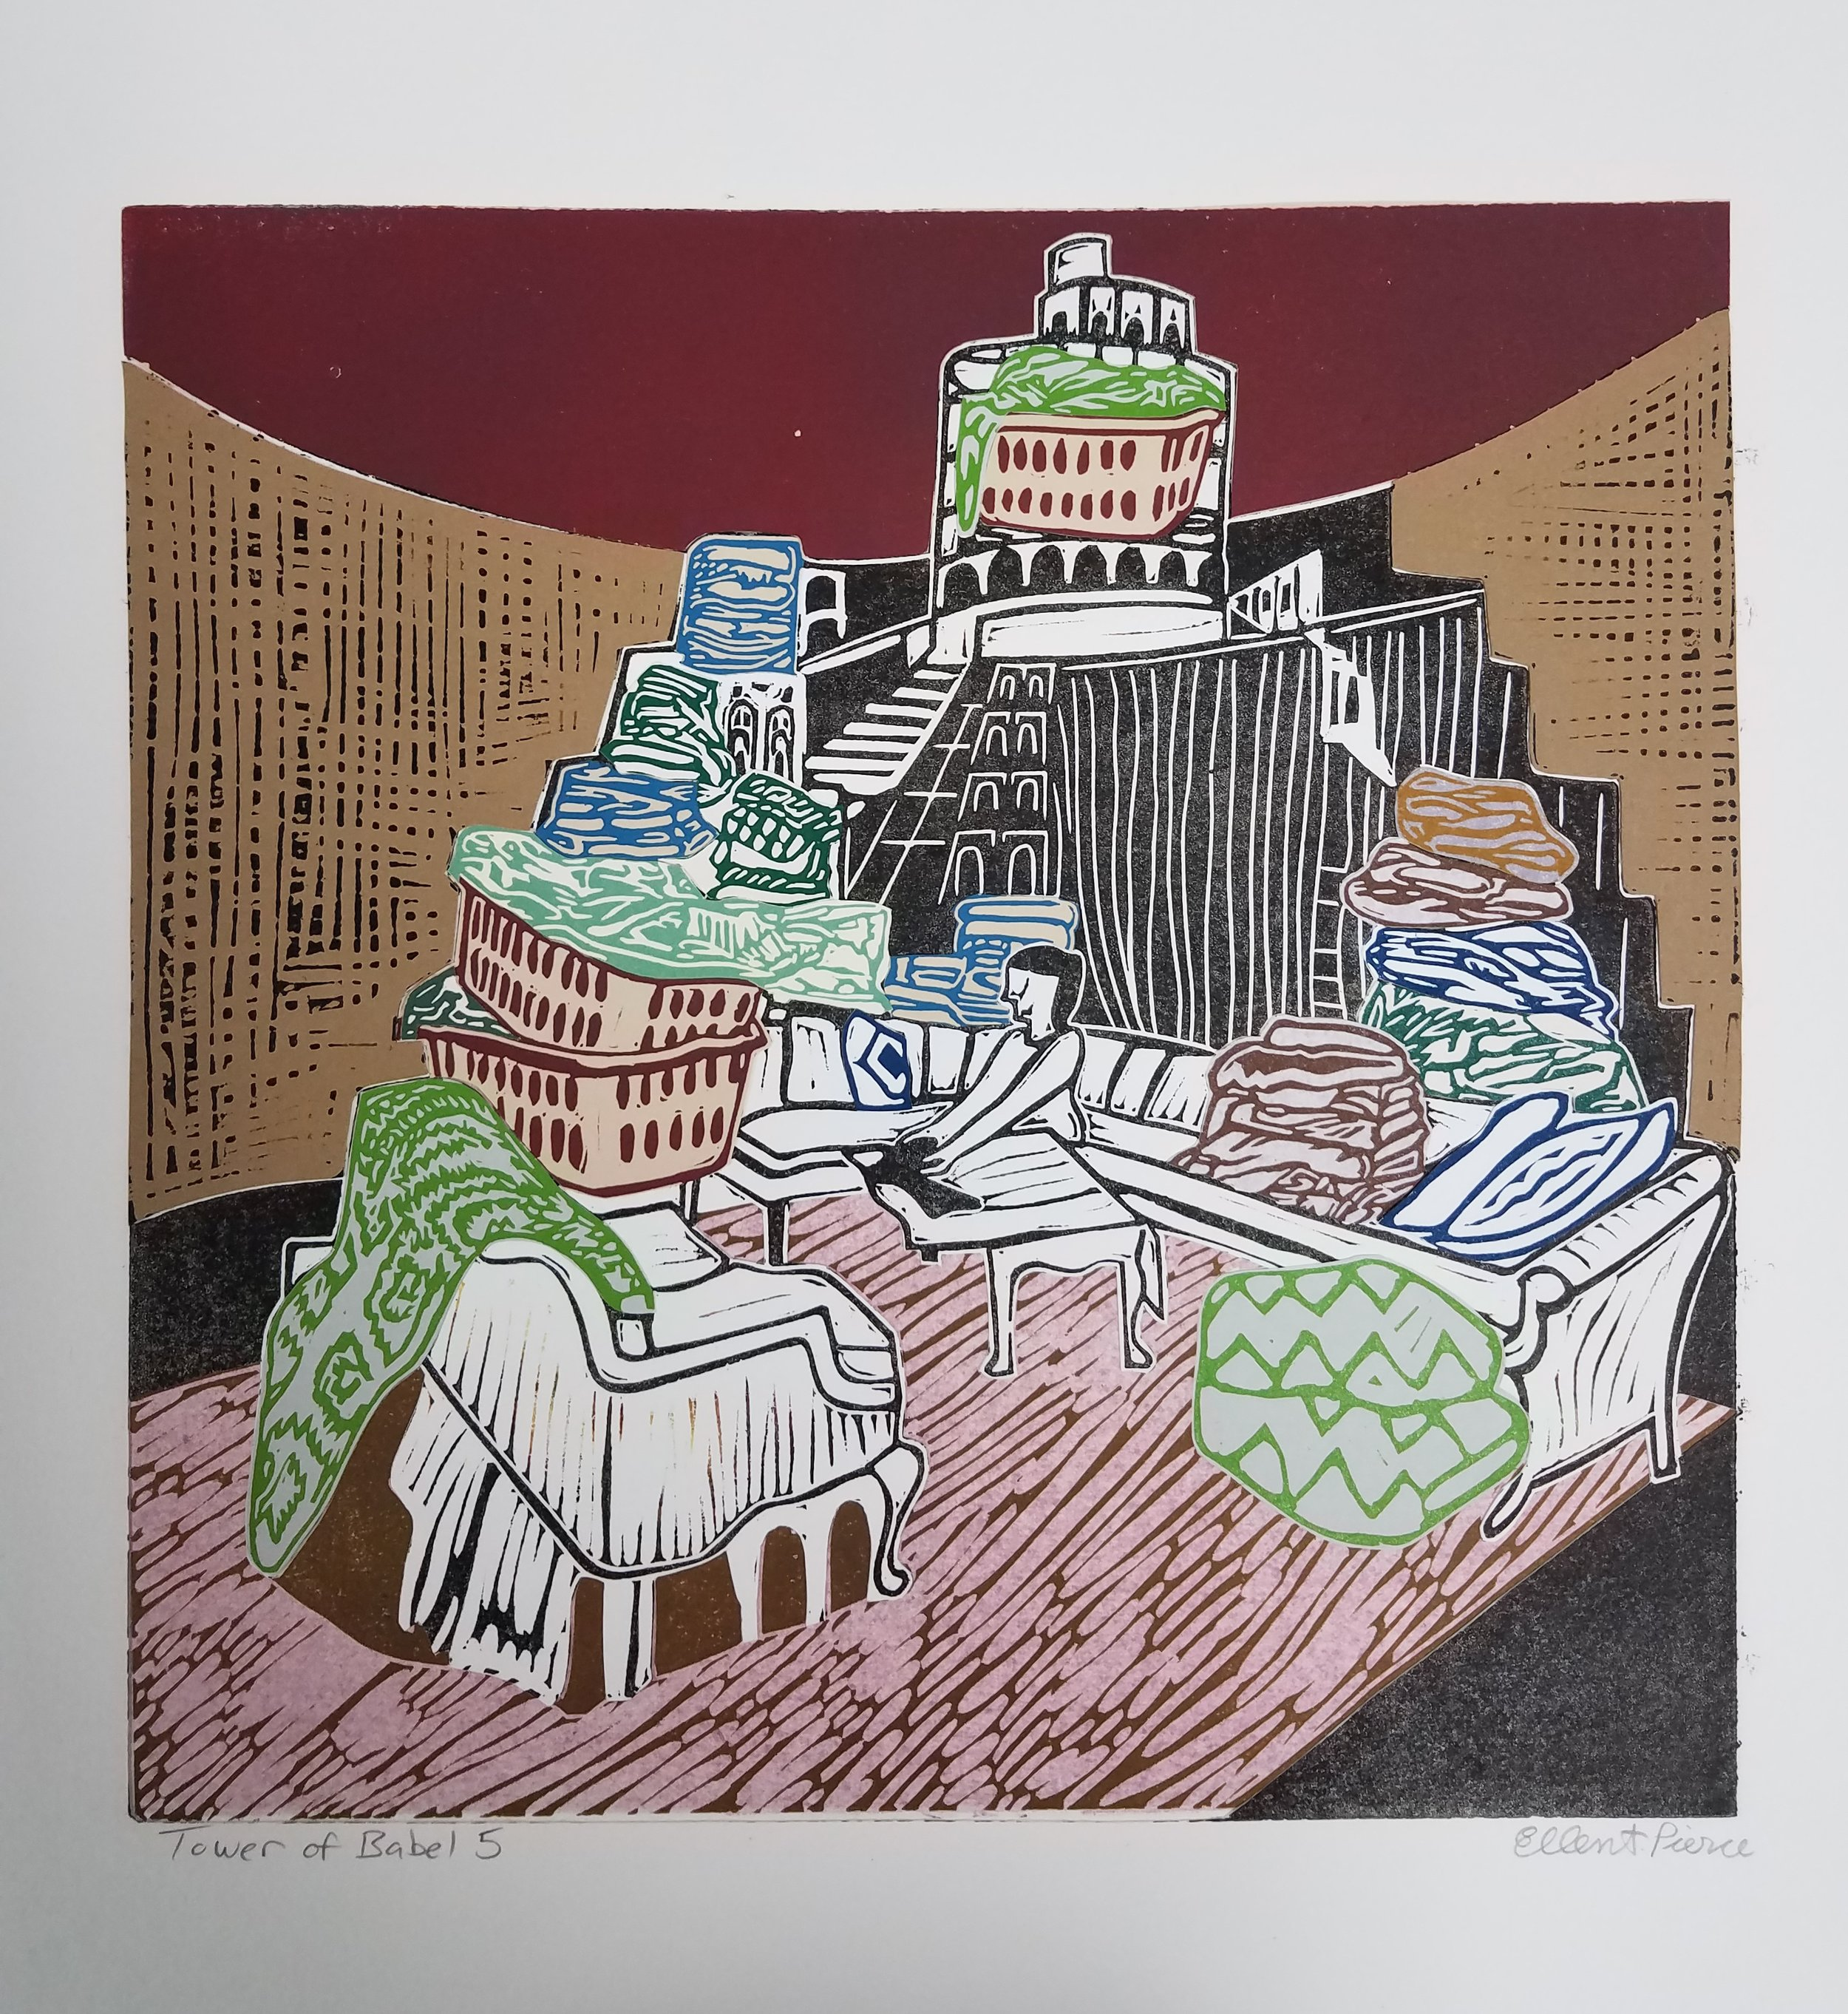 "Tower of Babel 5 , collaged linoleum print, variable edition, 16 3/4"" x 16 3/4"" framed, $450"